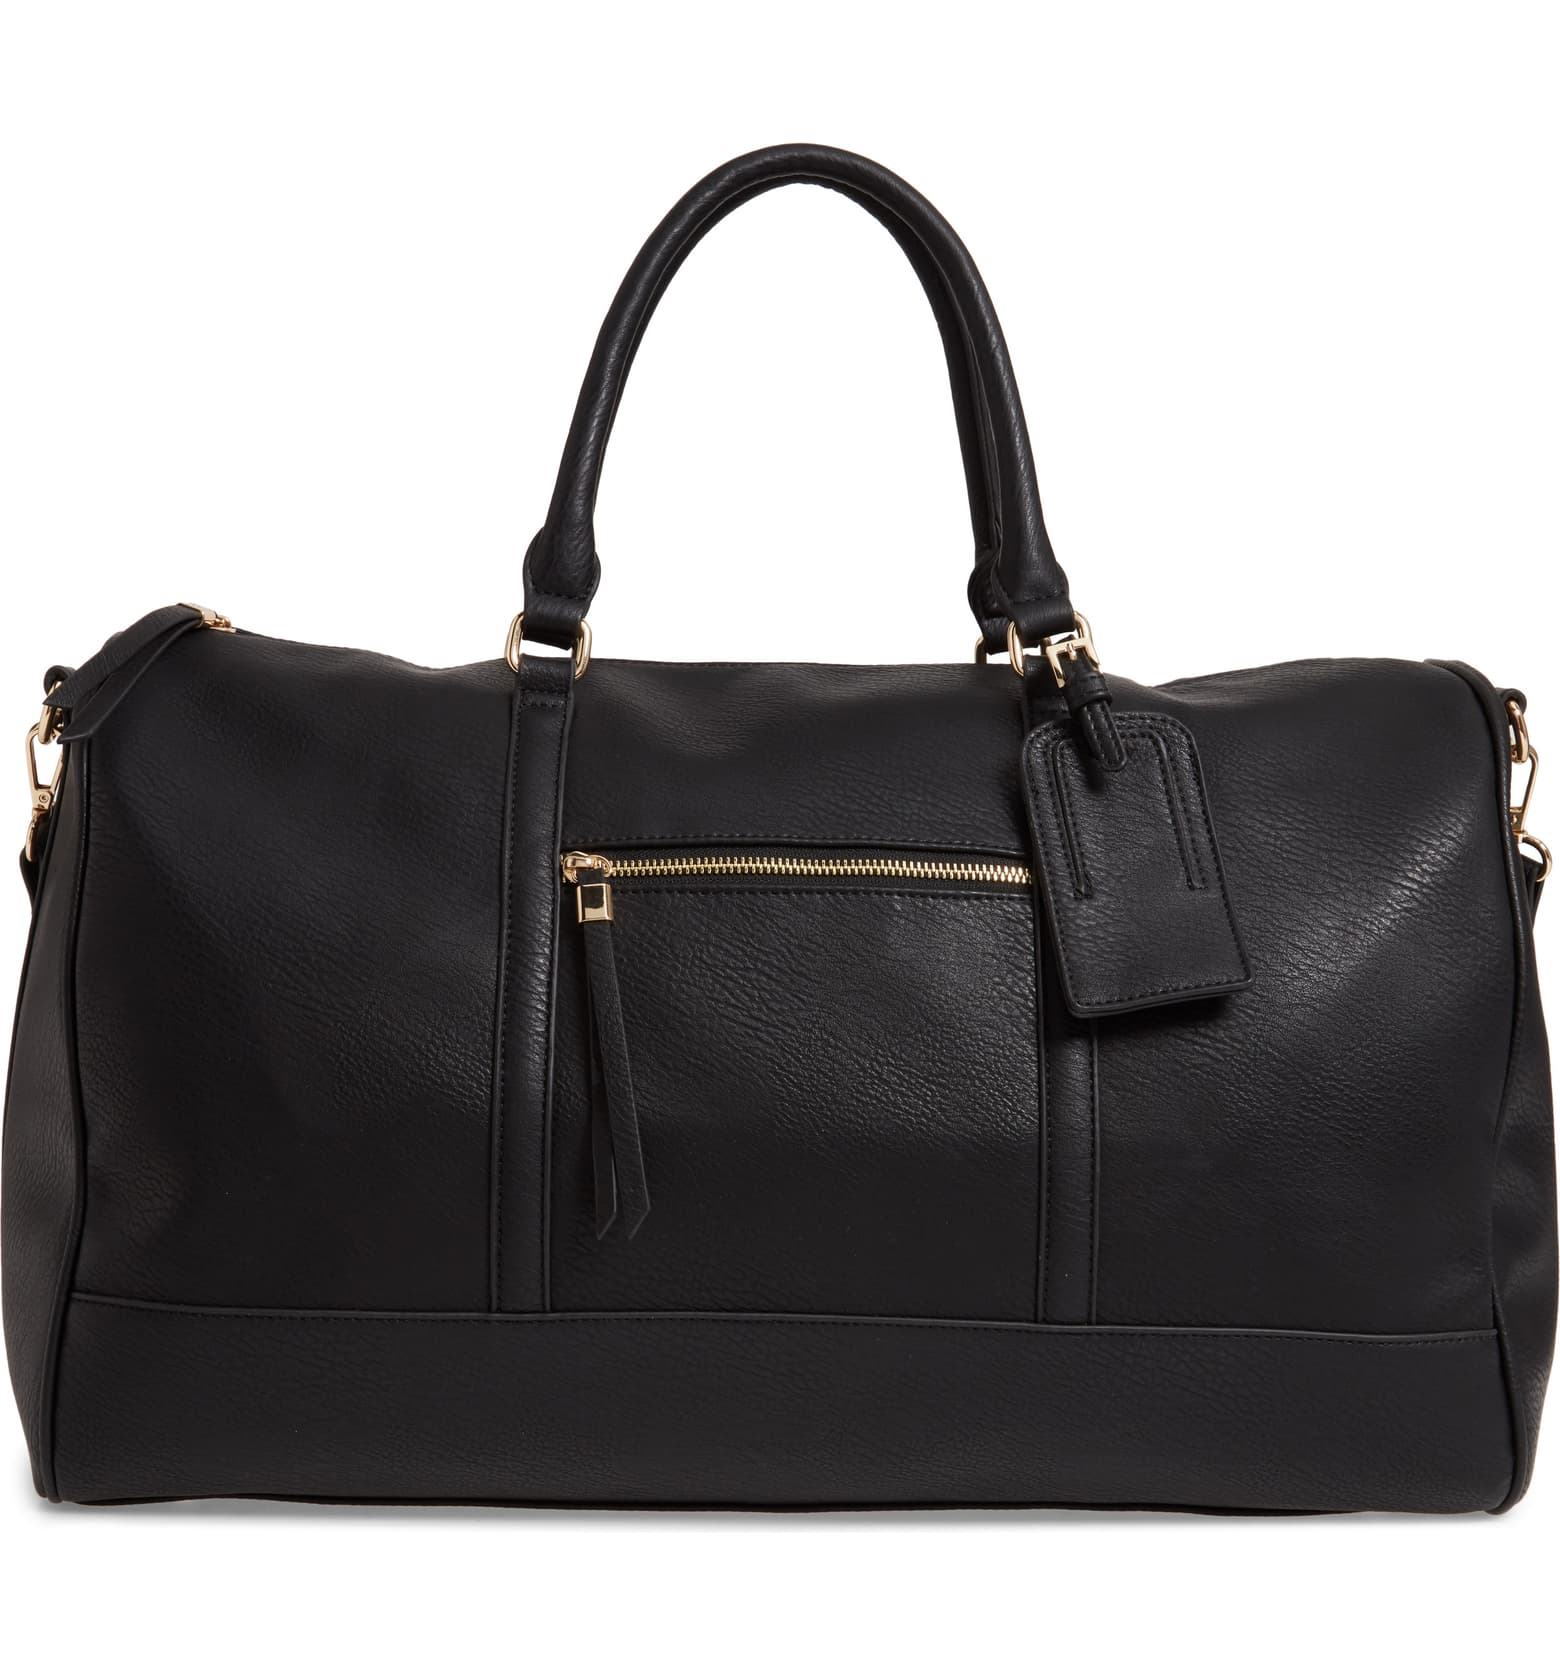 Duffel Bag - SALE: $59.90, after sale: $89.95